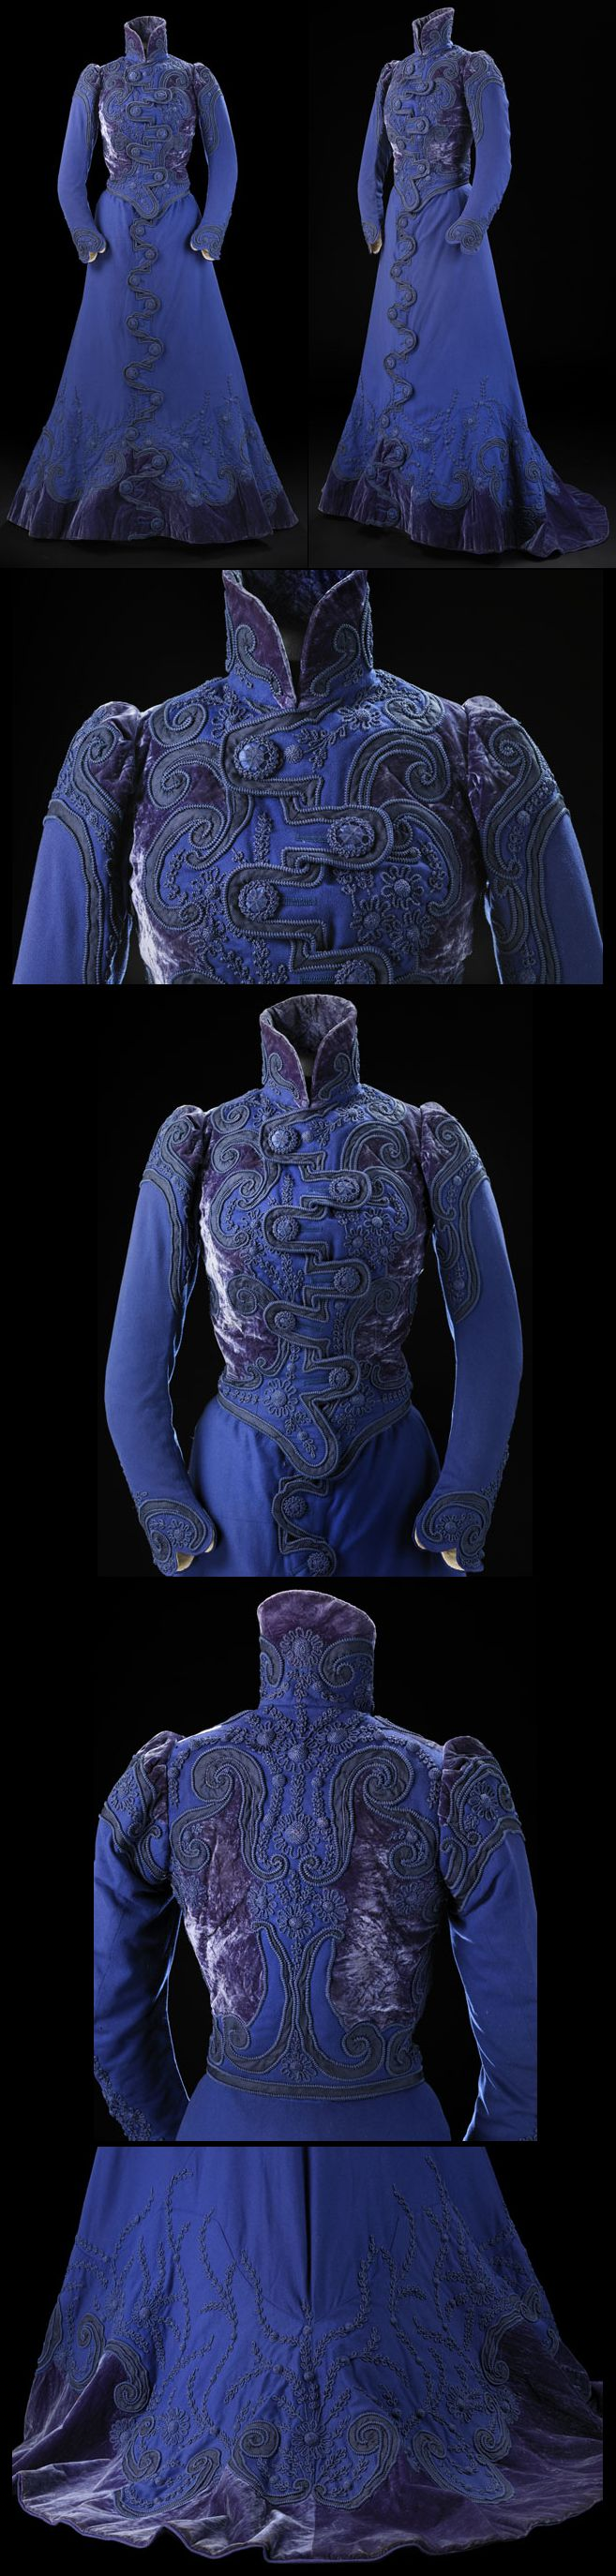 Woman's dress, Going-Away or tailor-made dress, consisting of bodice, in royal blue wool facecloth (1899). Hayward maker.  http://collections.glasgowmuseums.com/mwebcgi/mweb?request=record;id=458713;type=101#